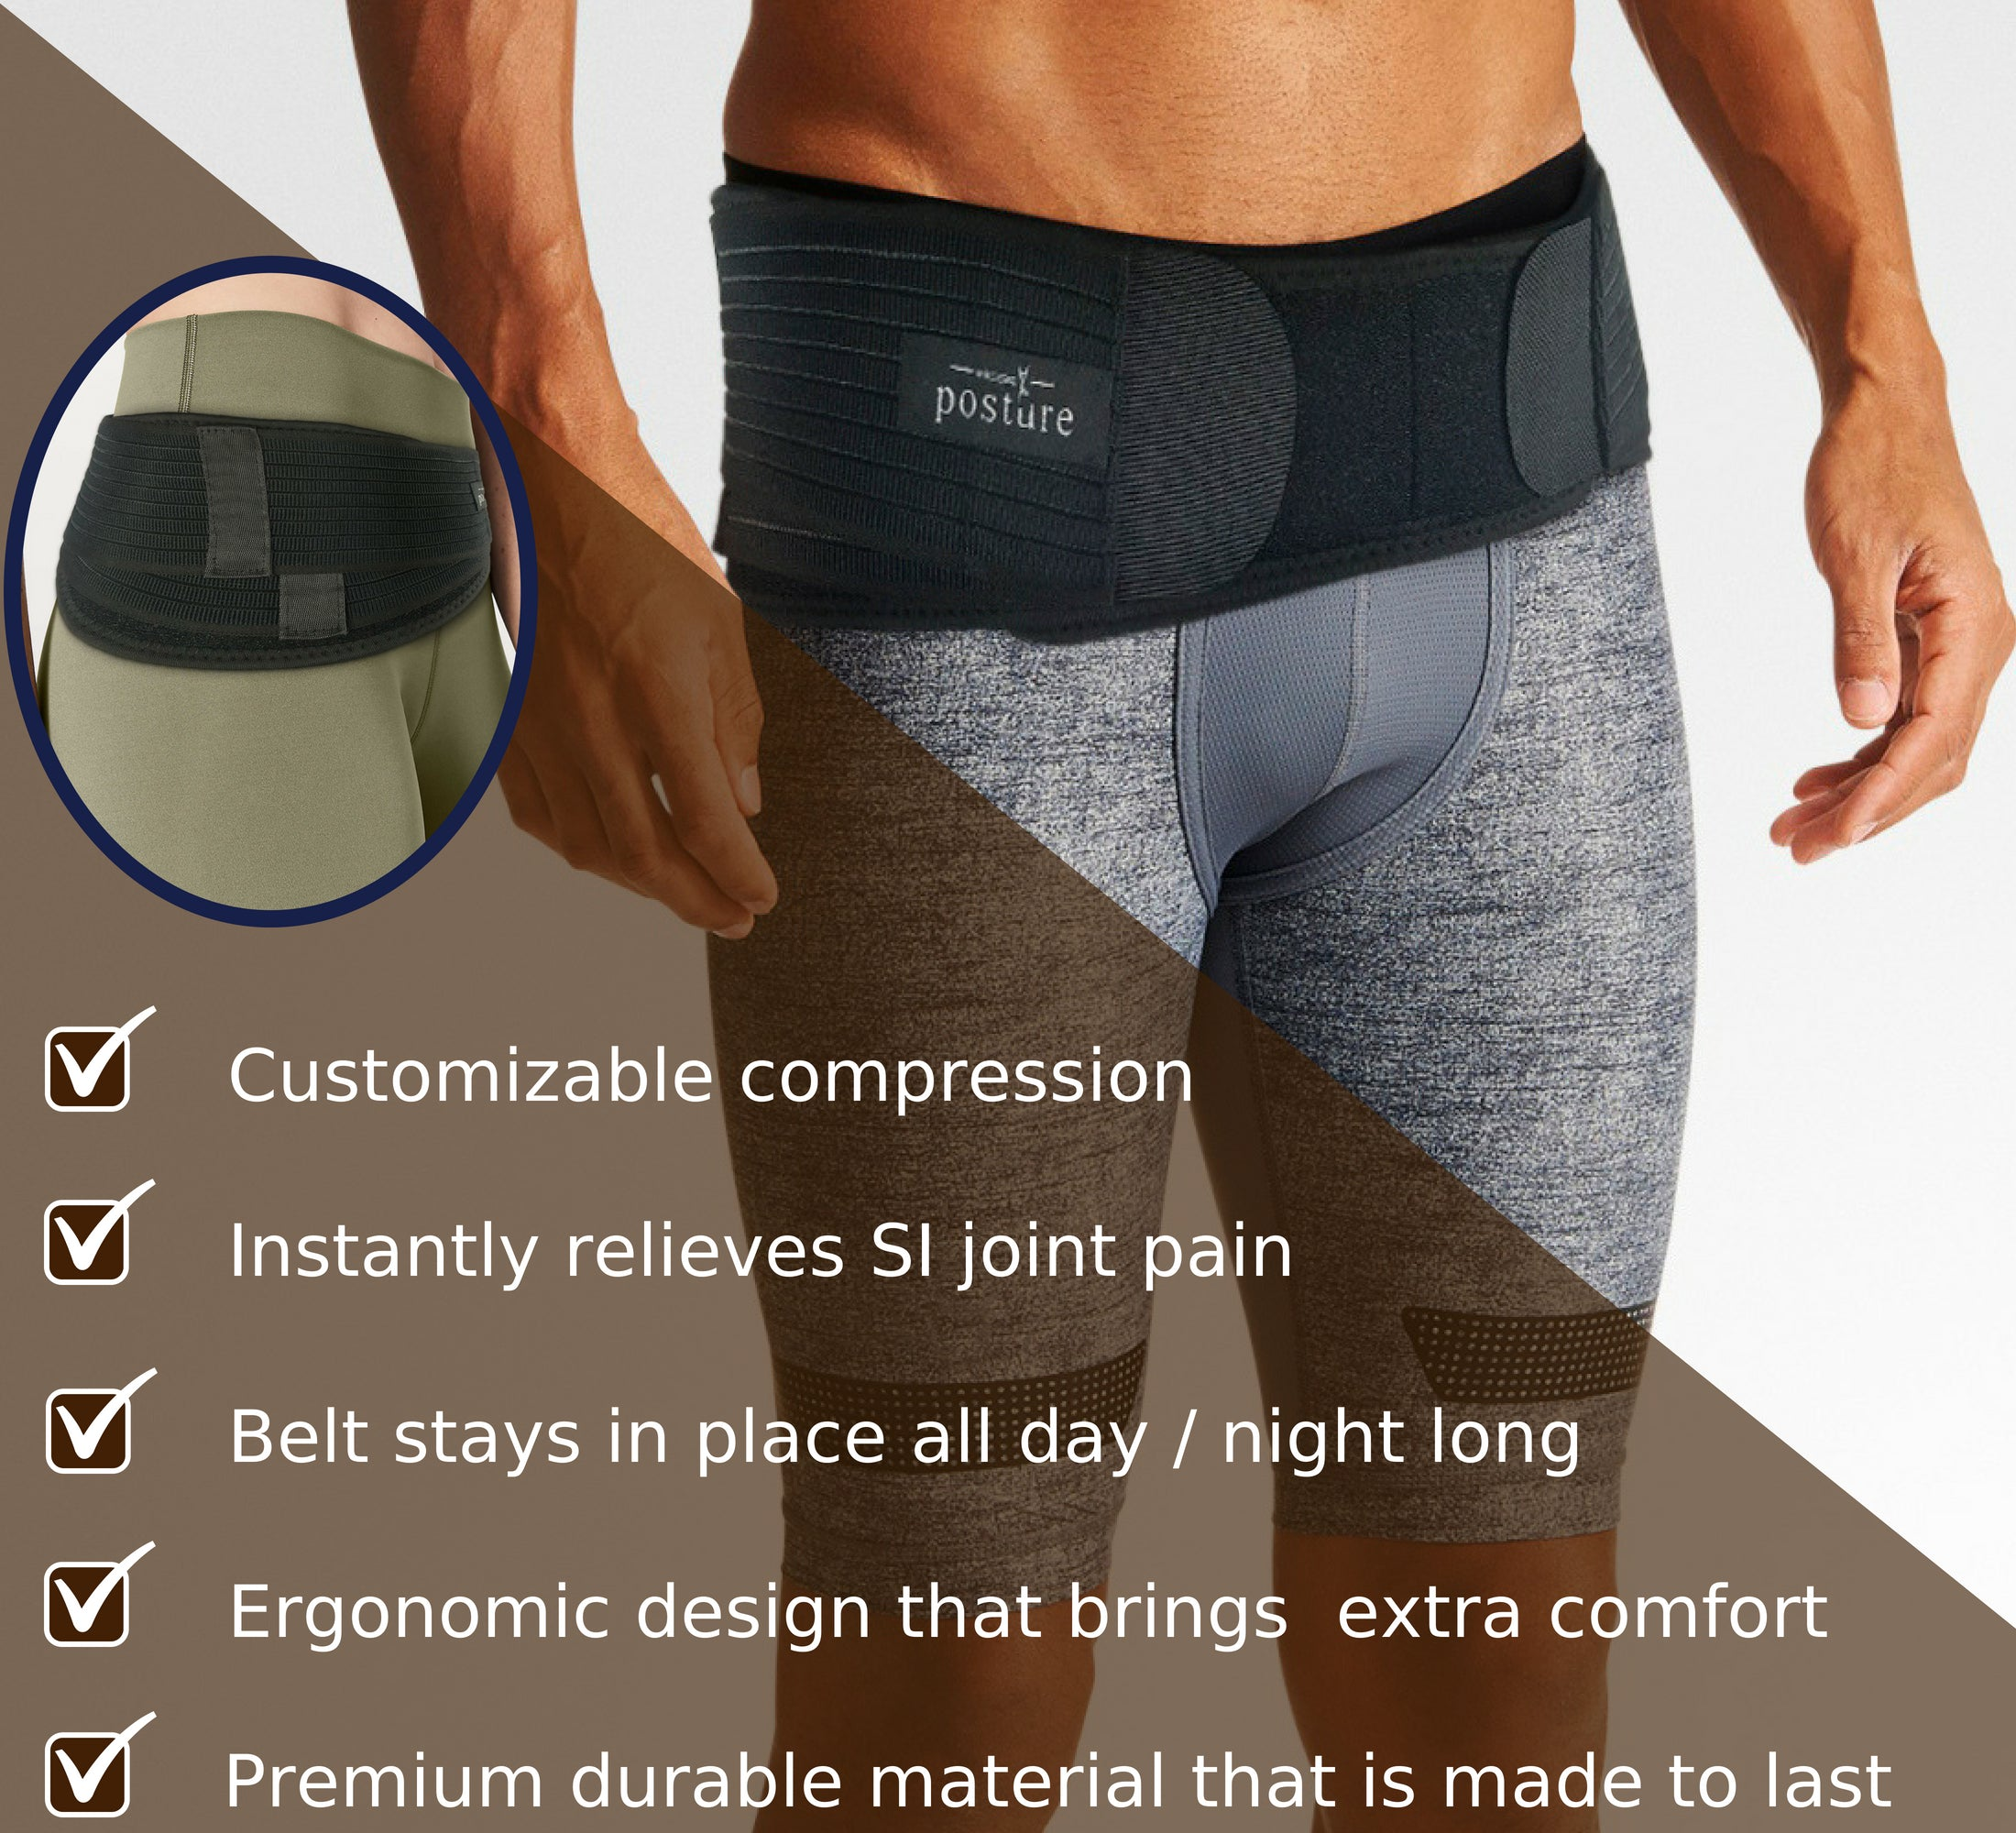 sciatica belt for men that relieves back pain